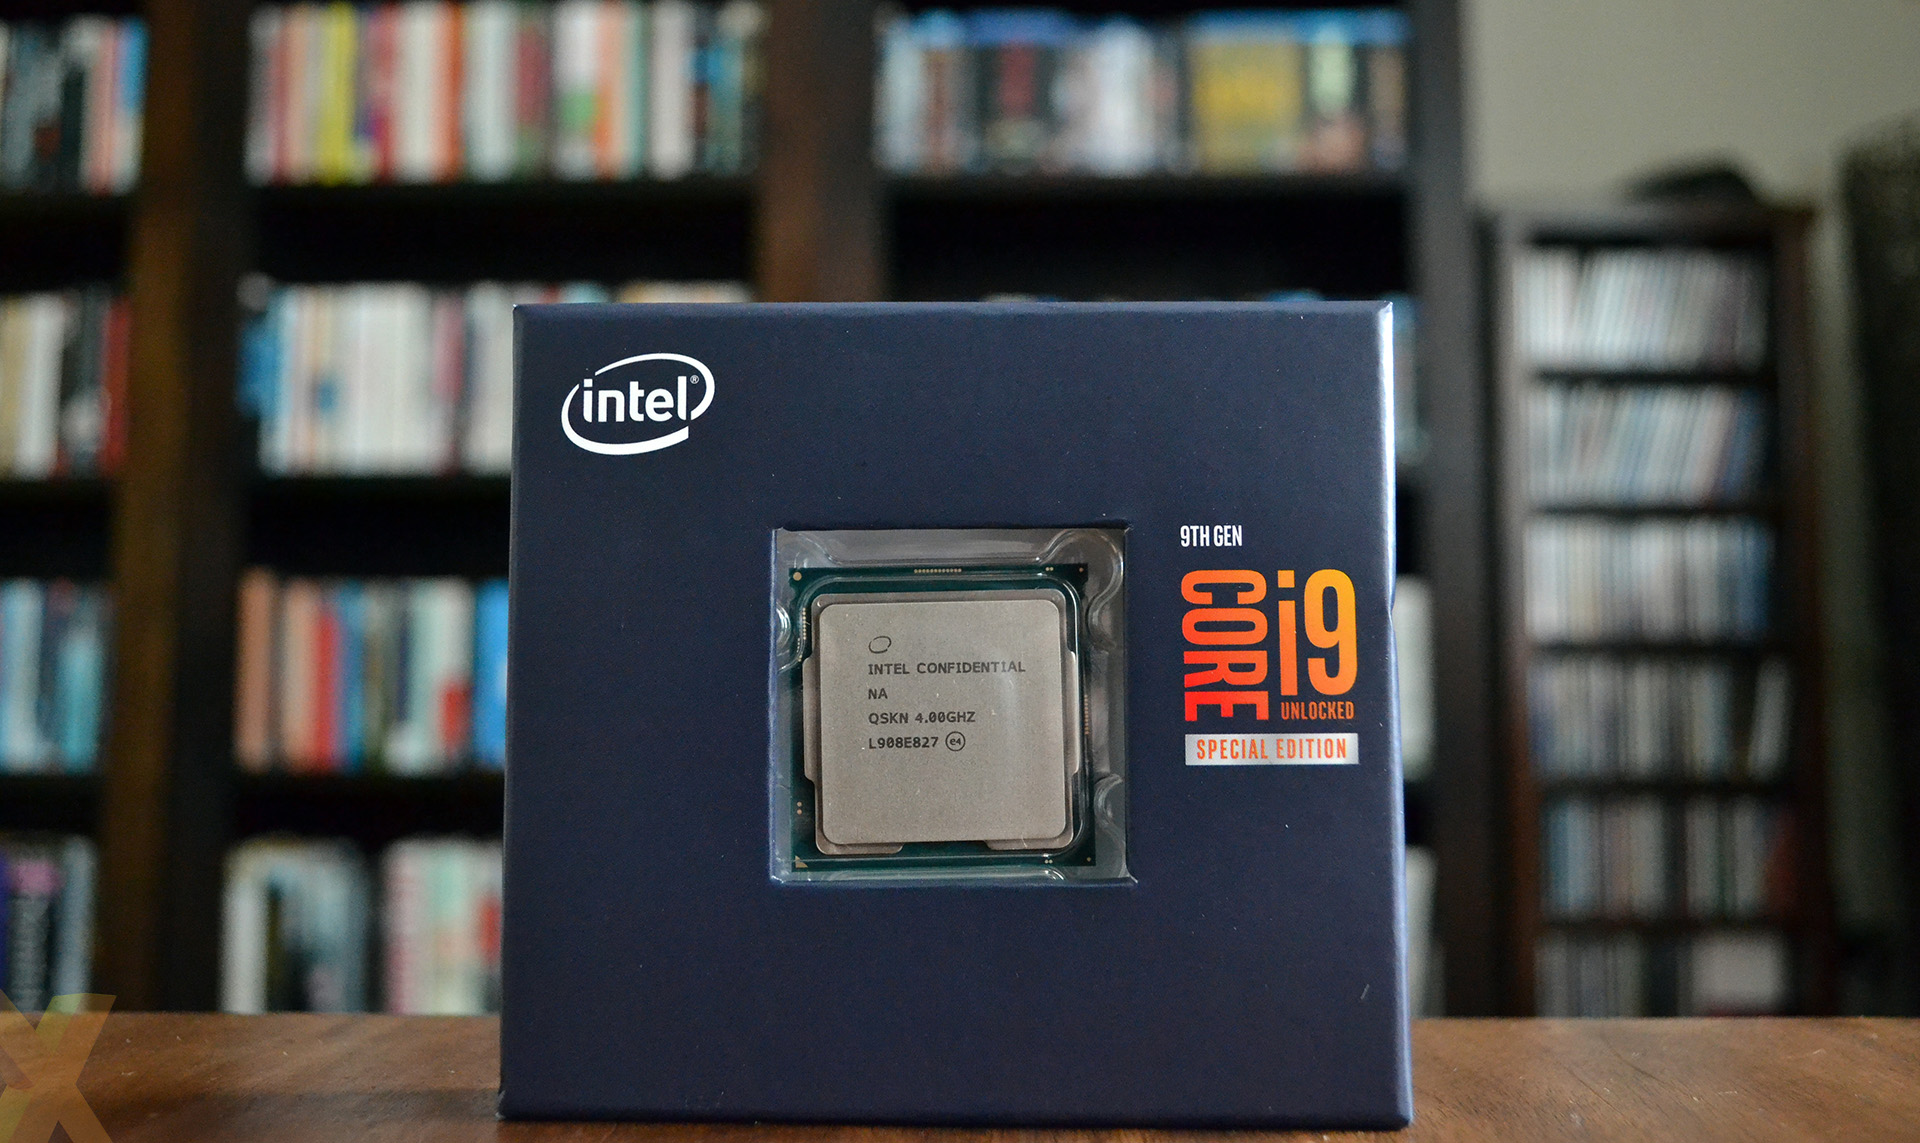 Intel announce full details of the special edition Core i9-9900KS CPU